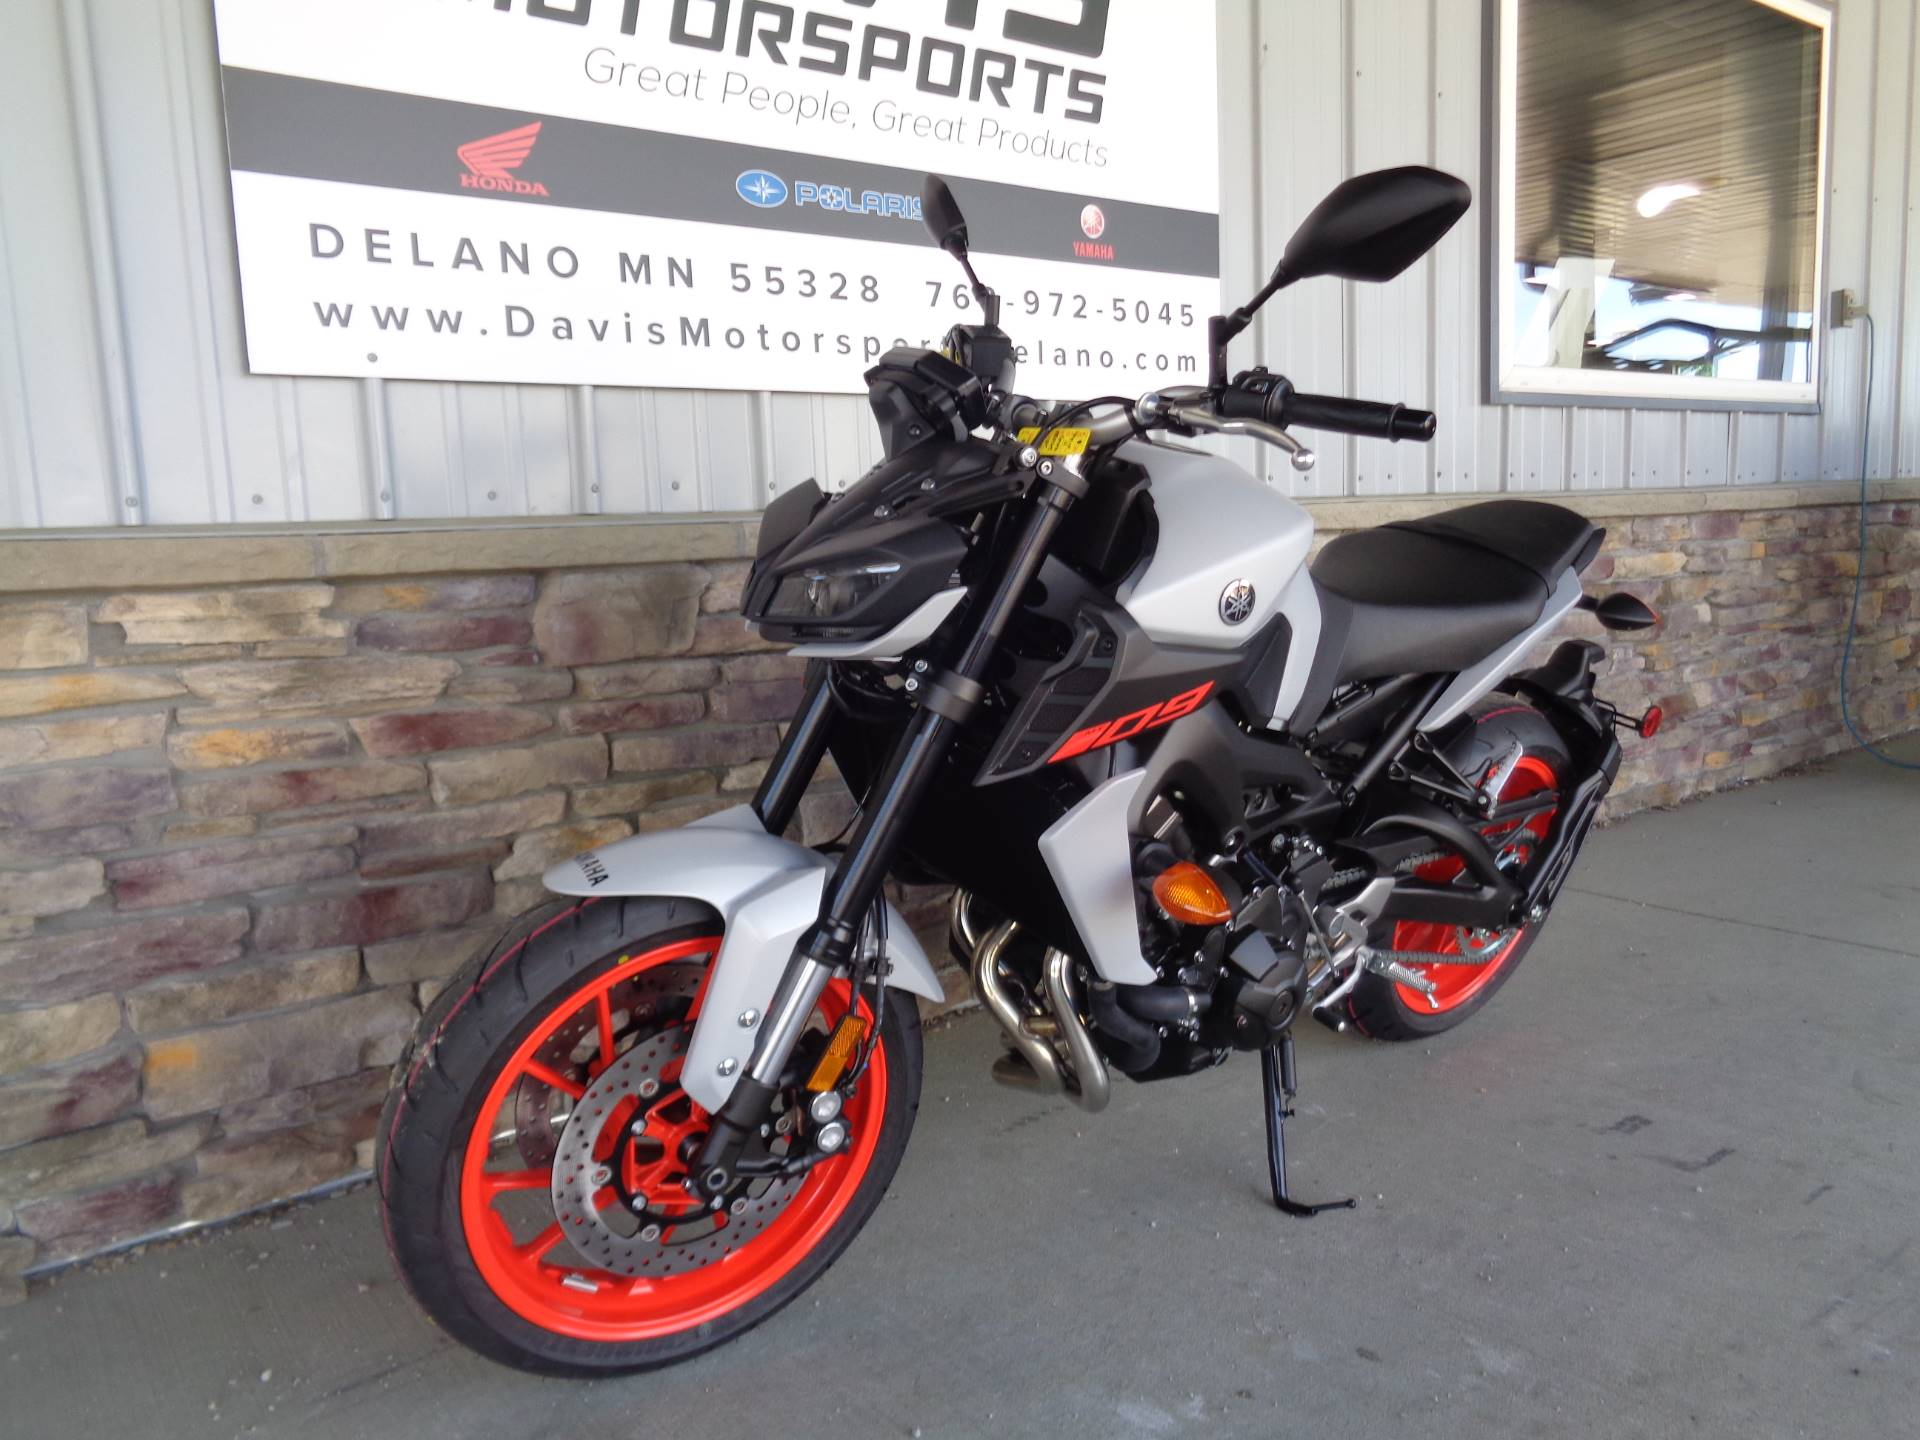 2019 Yamaha MT-09 in Delano, Minnesota